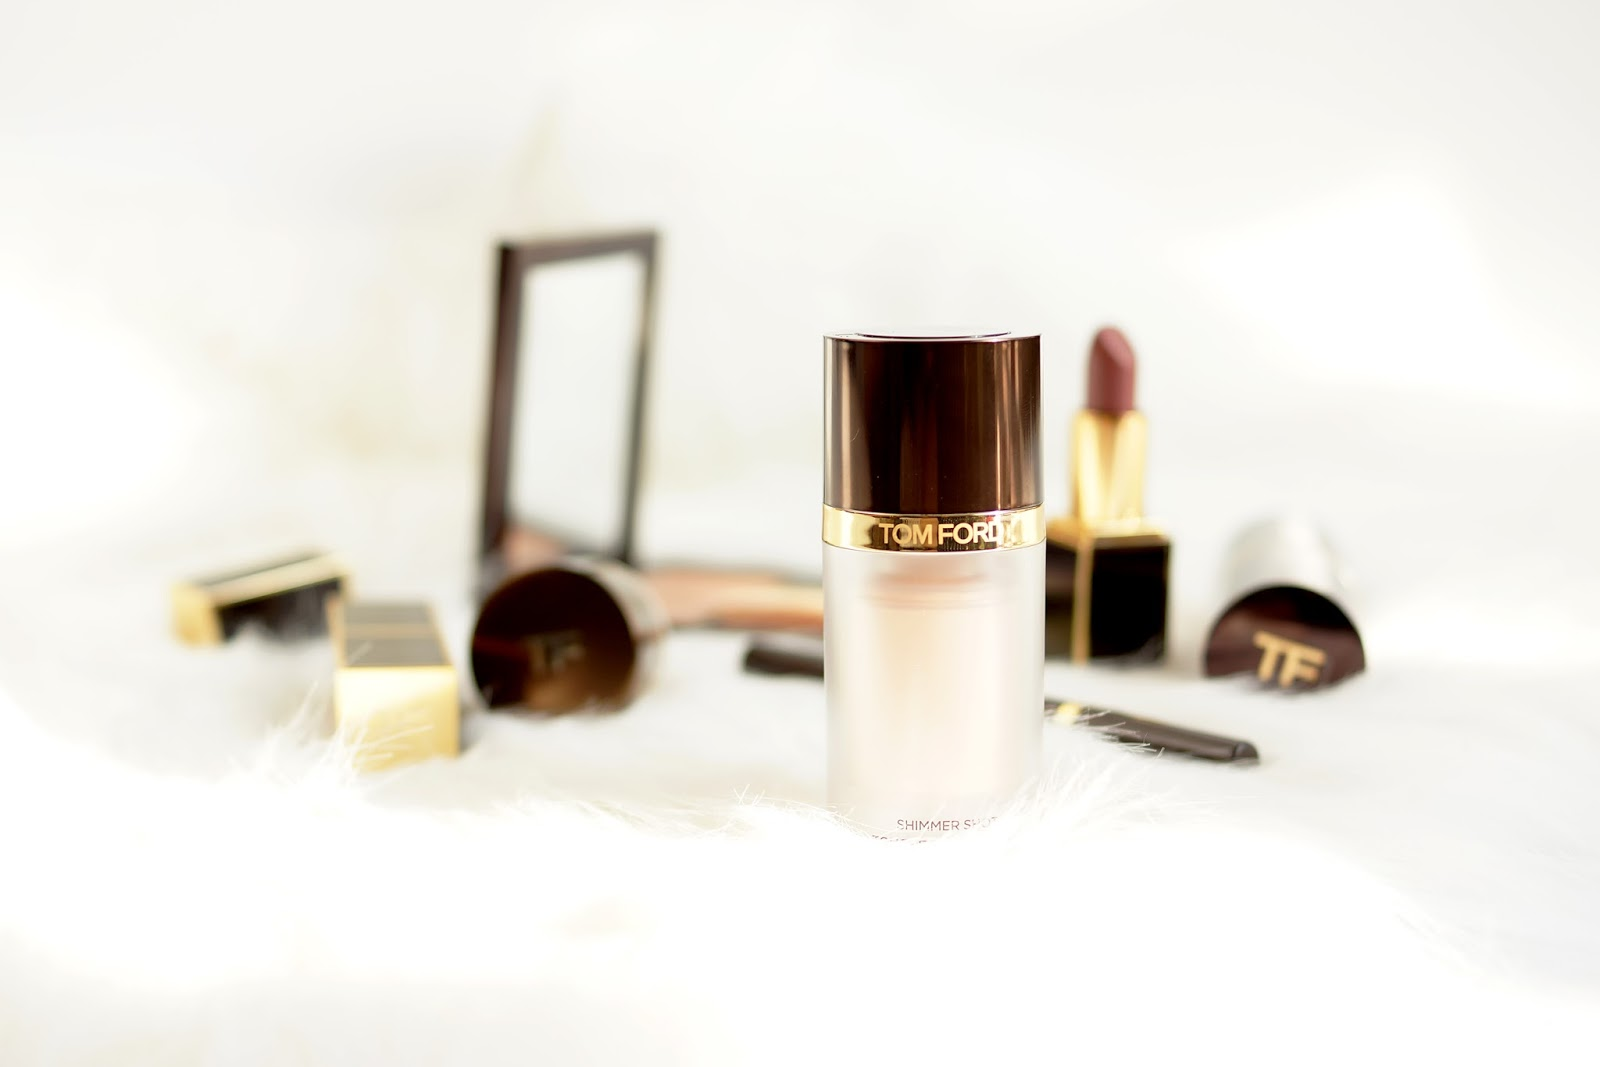 tom-ford-shimmer-shots-review-spin-spin-sugar